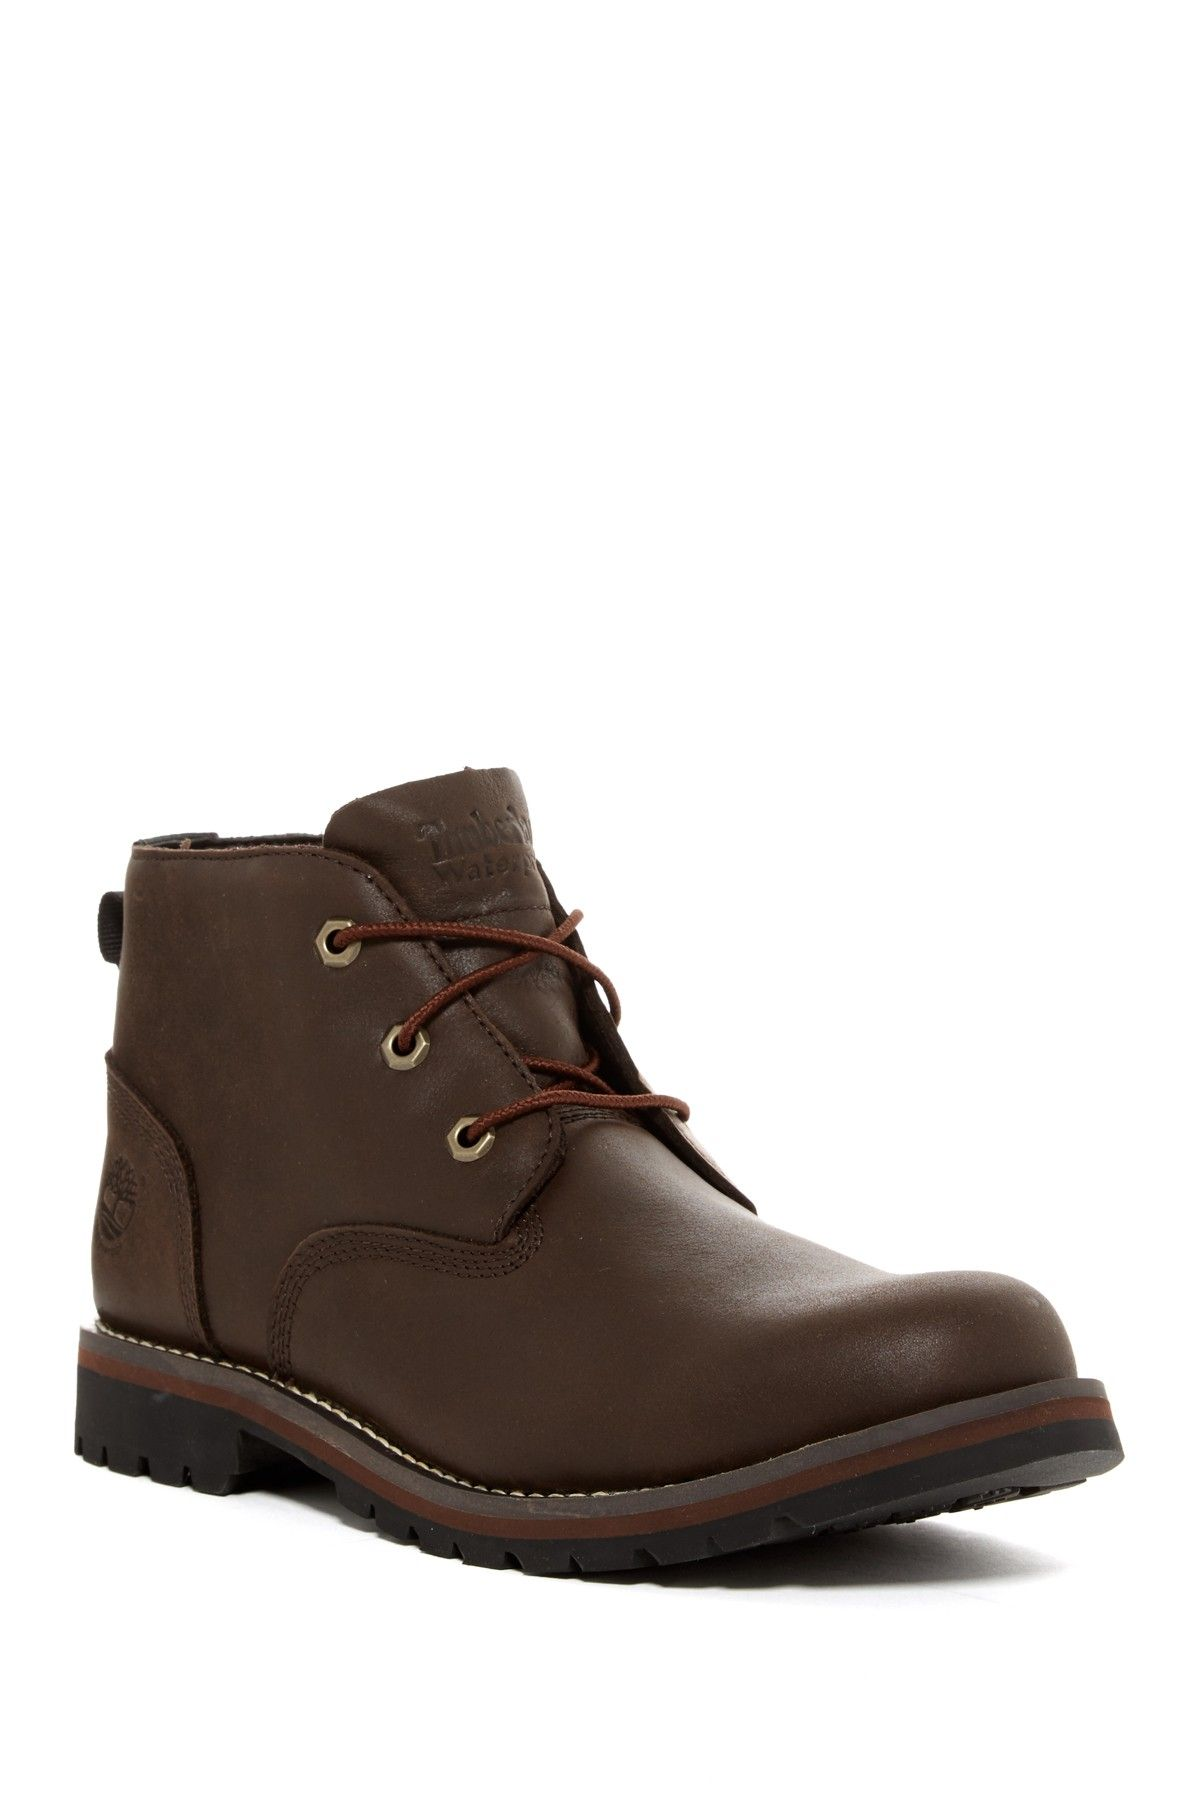 1845c645cec Larchmont Chukka Boot - Waterproof by Timberland on @nordstrom_rack ...